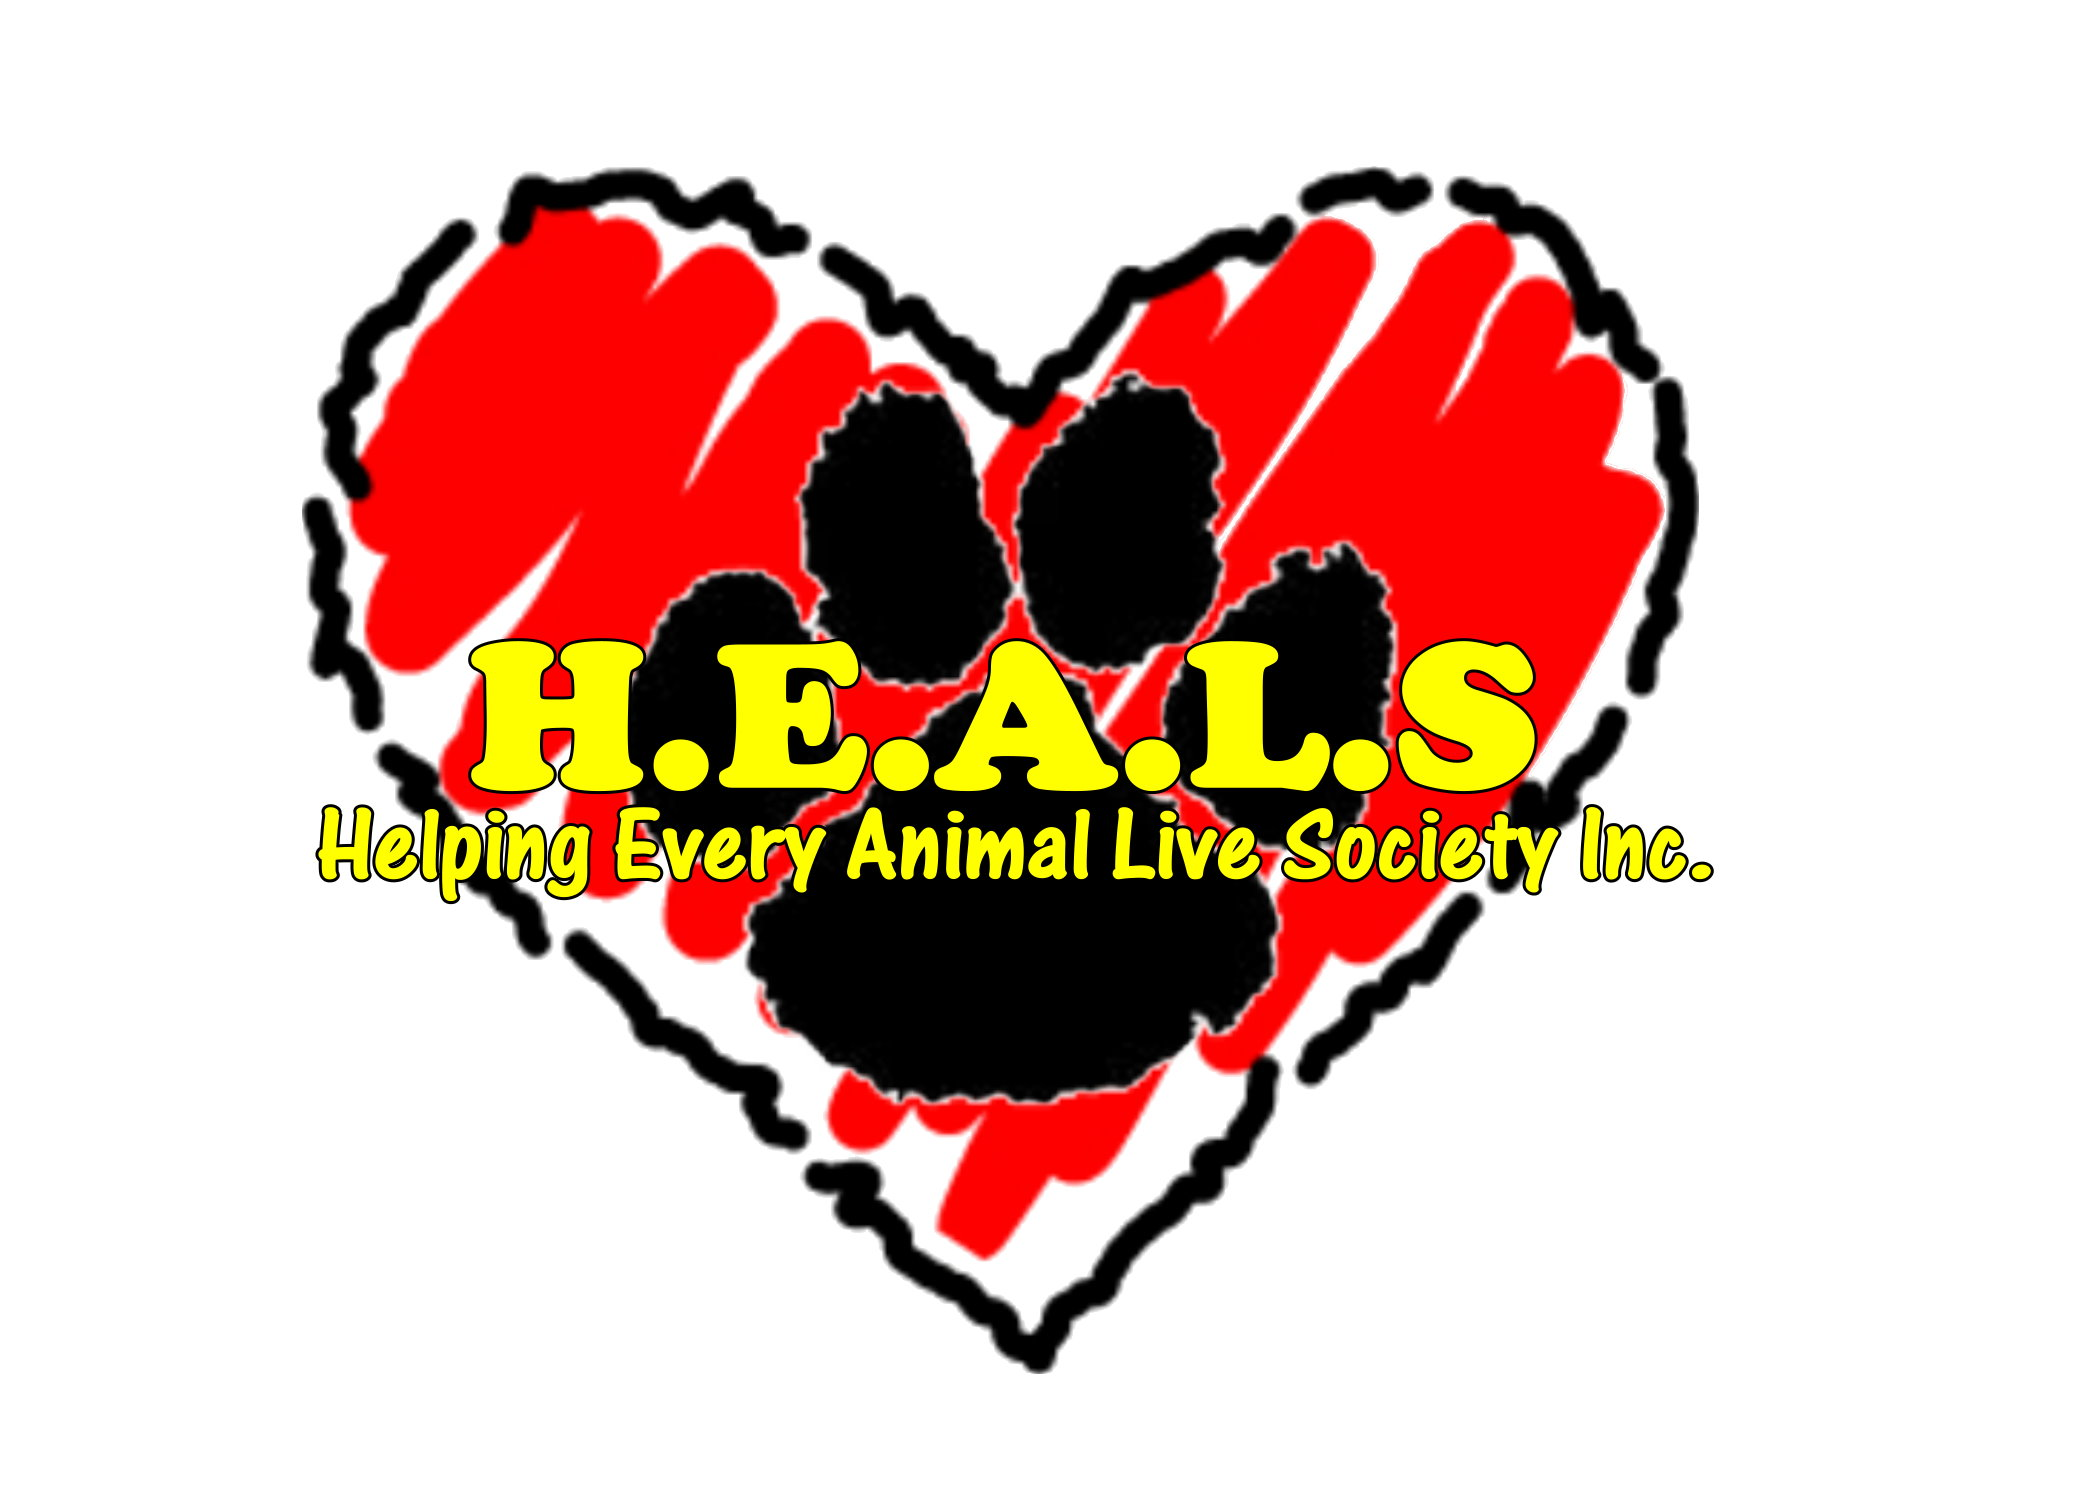 Helping Every Animal Live Society Inc. (H.E.A.L.S.)